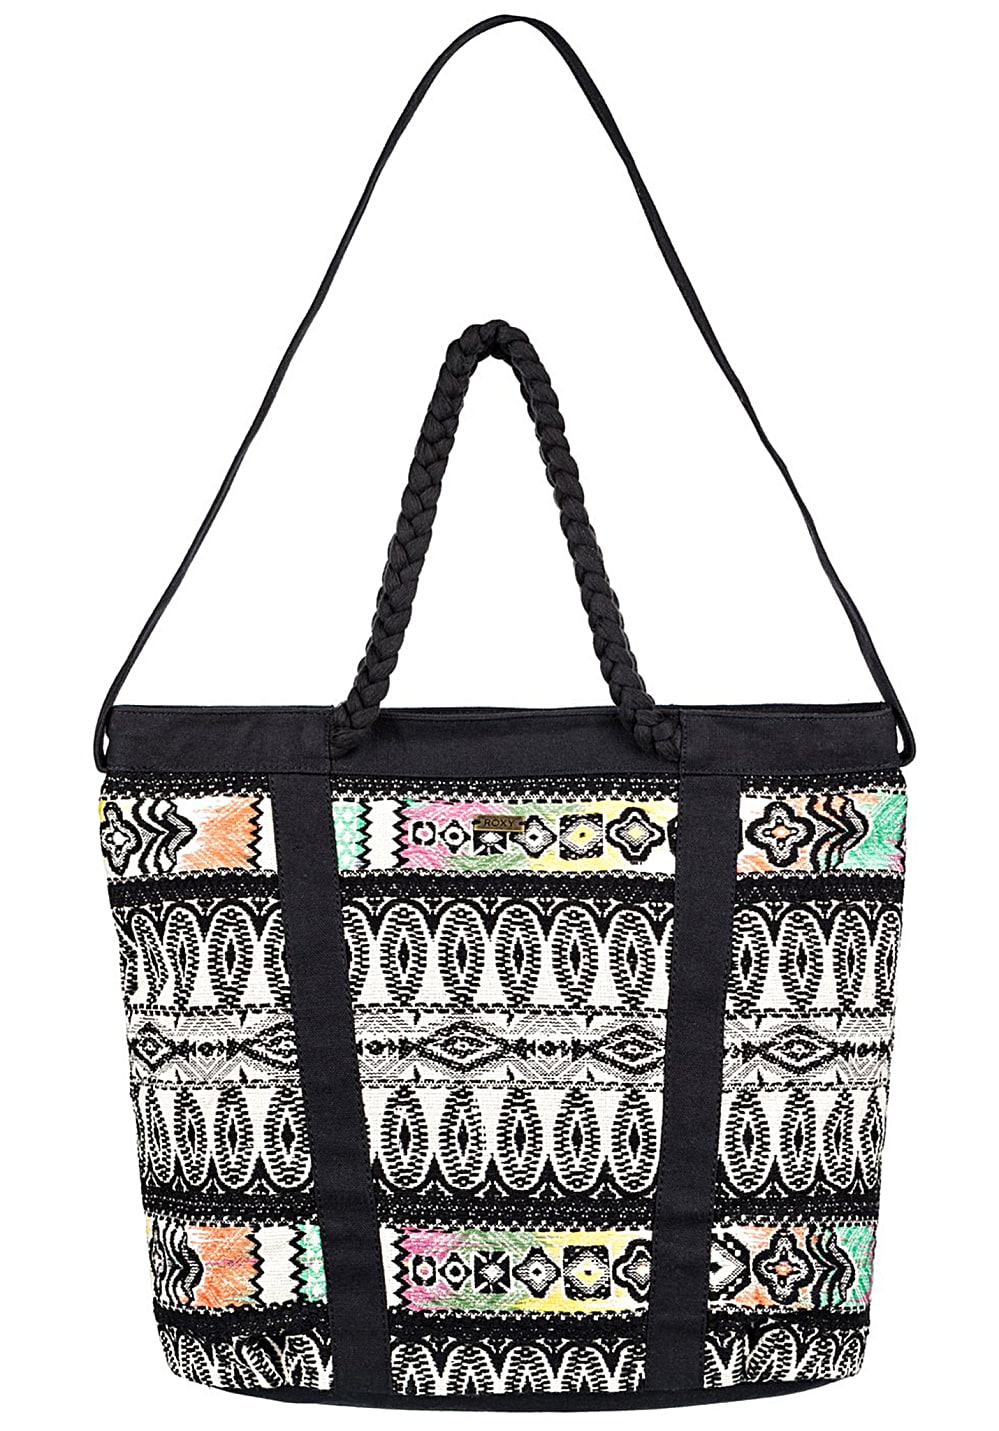 Roxy Stay Together - Handtasche für Damen - Sch...